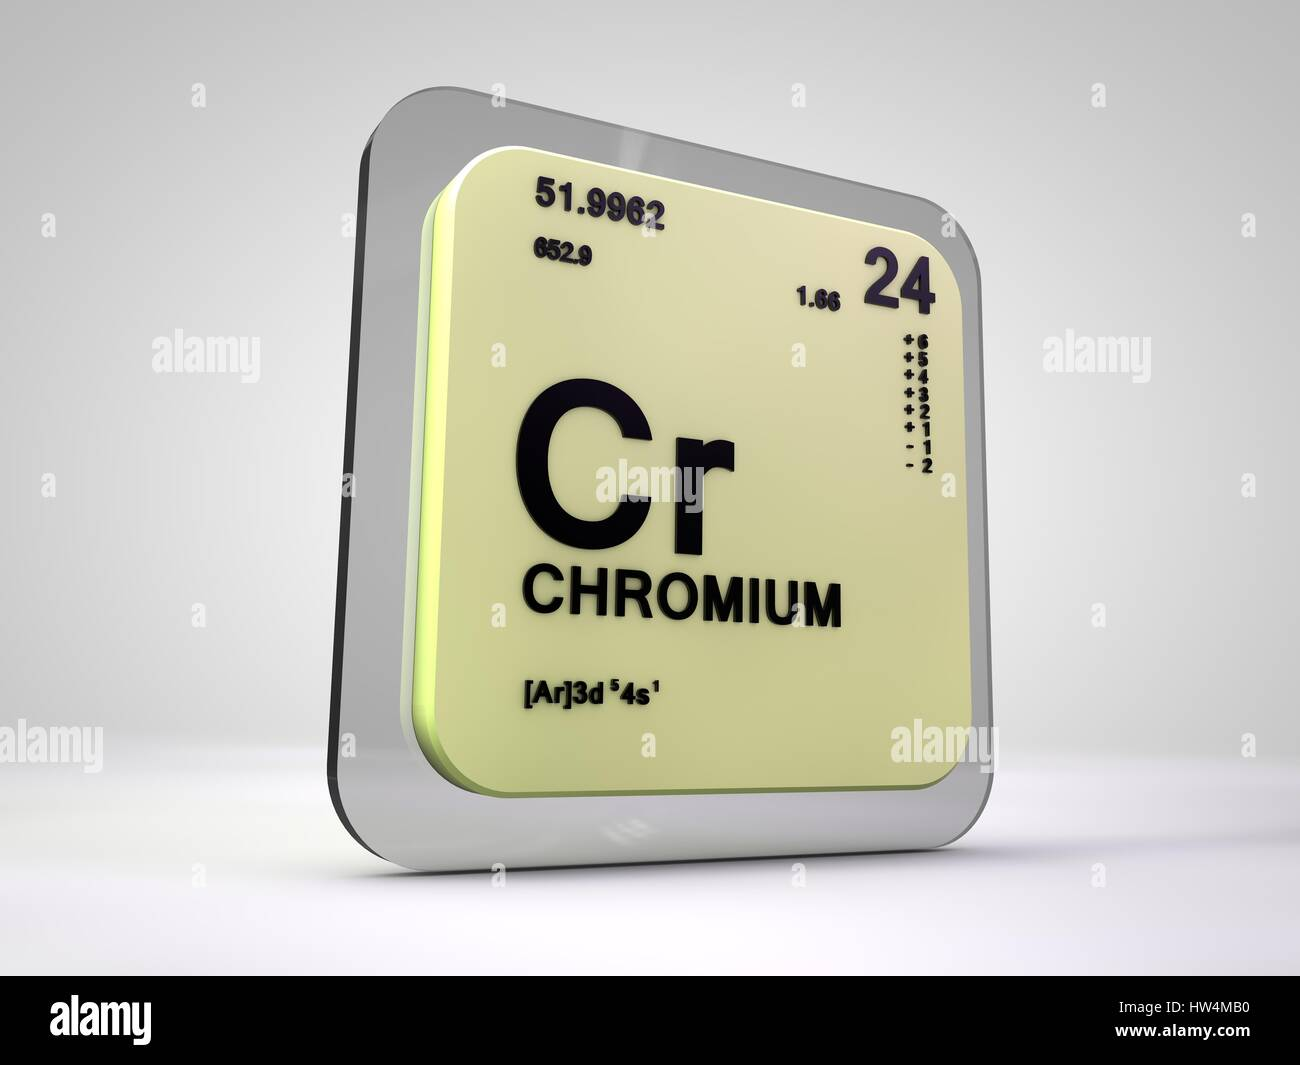 Chromium cr chemical element periodic table 3d render stock chromium cr chemical element periodic table 3d render buycottarizona